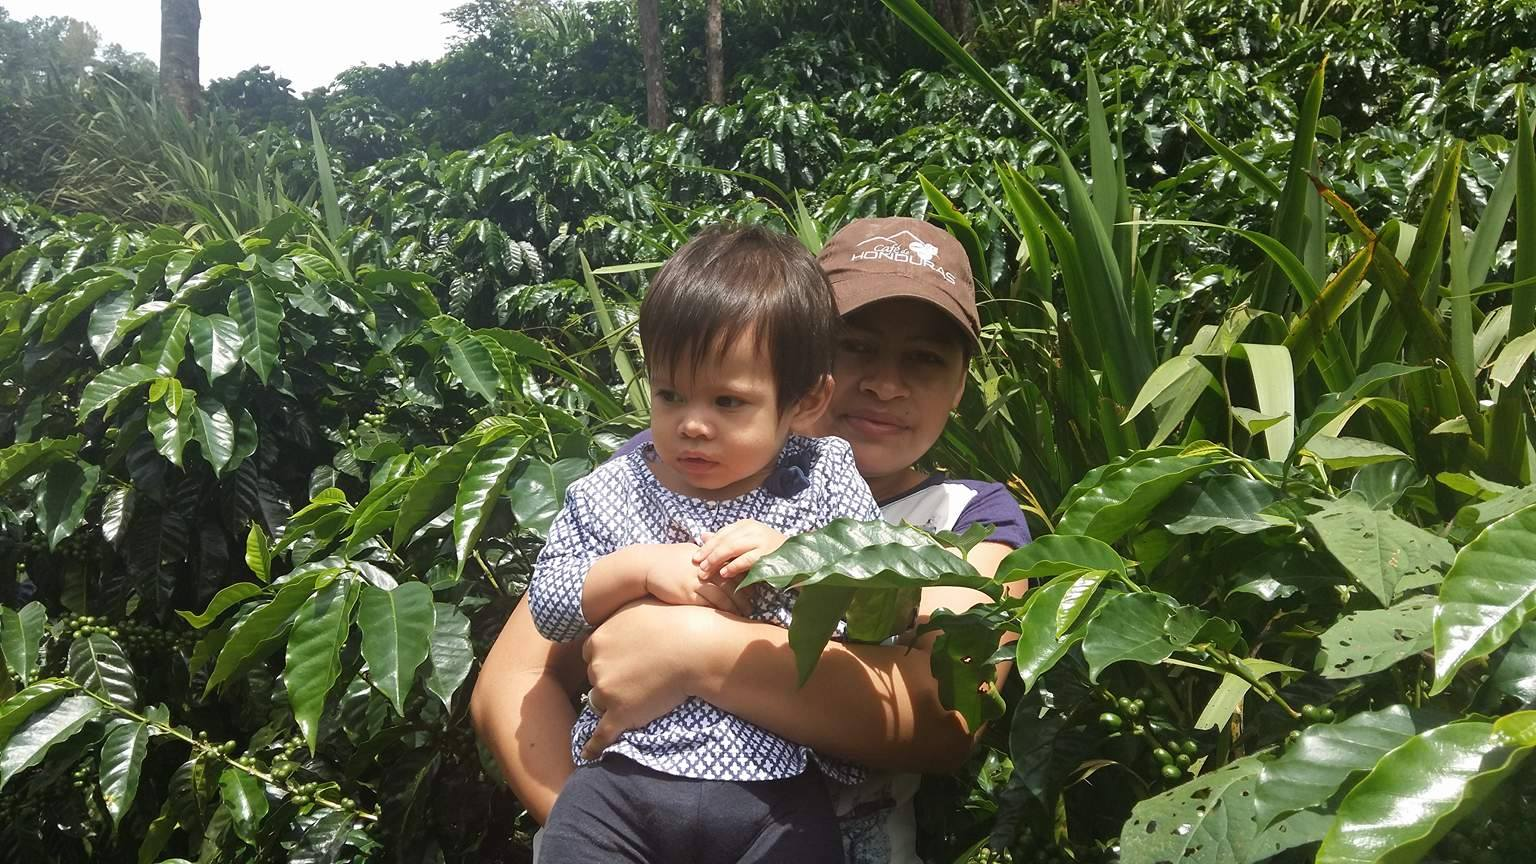 Elsy and her 4 year old son on the farm